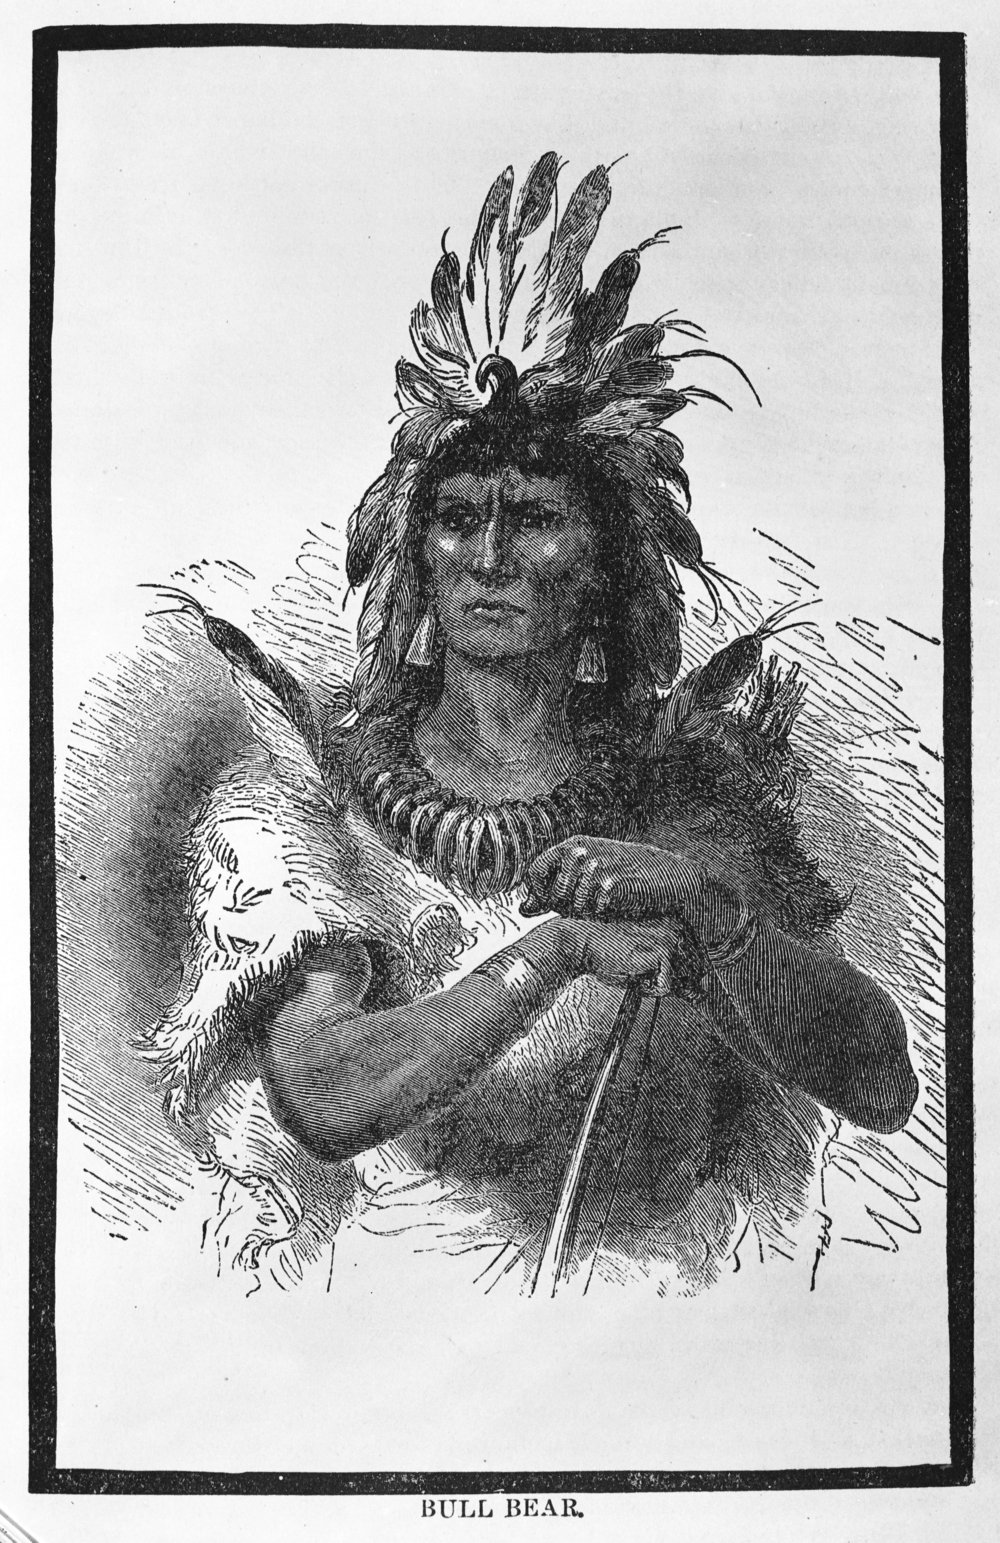 Cheyenne Chief Bull Bear